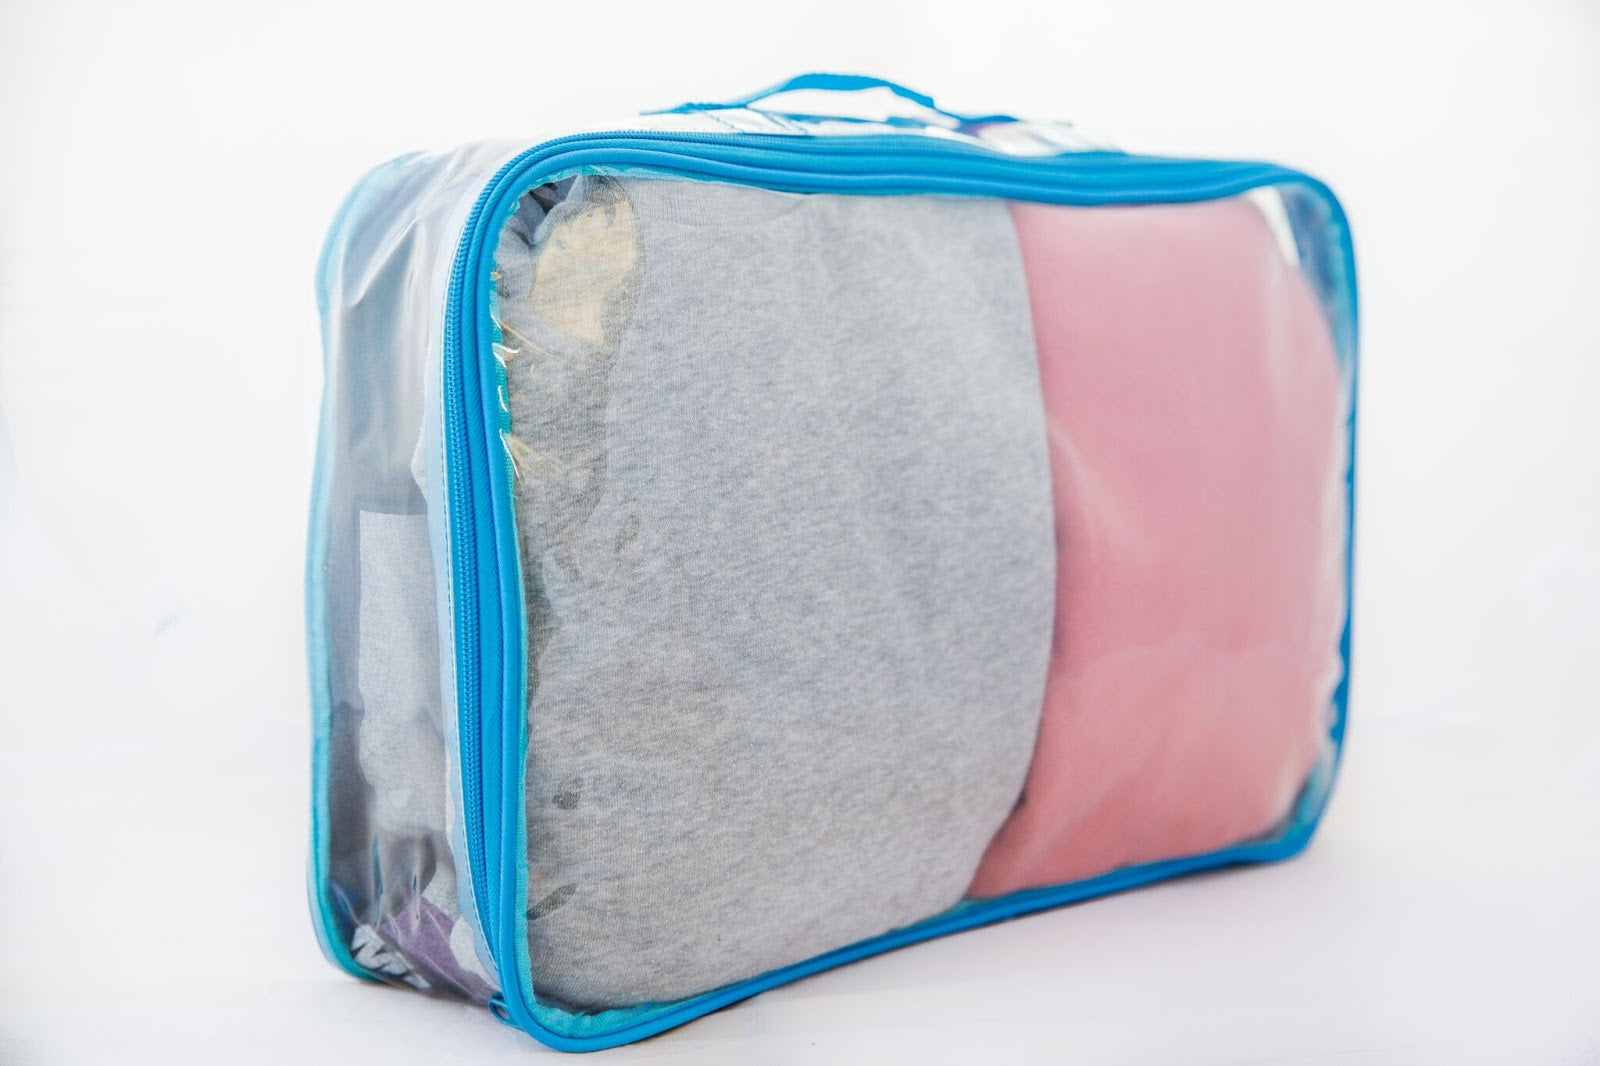 Turquoise clear large packing cube for carry-on luggage